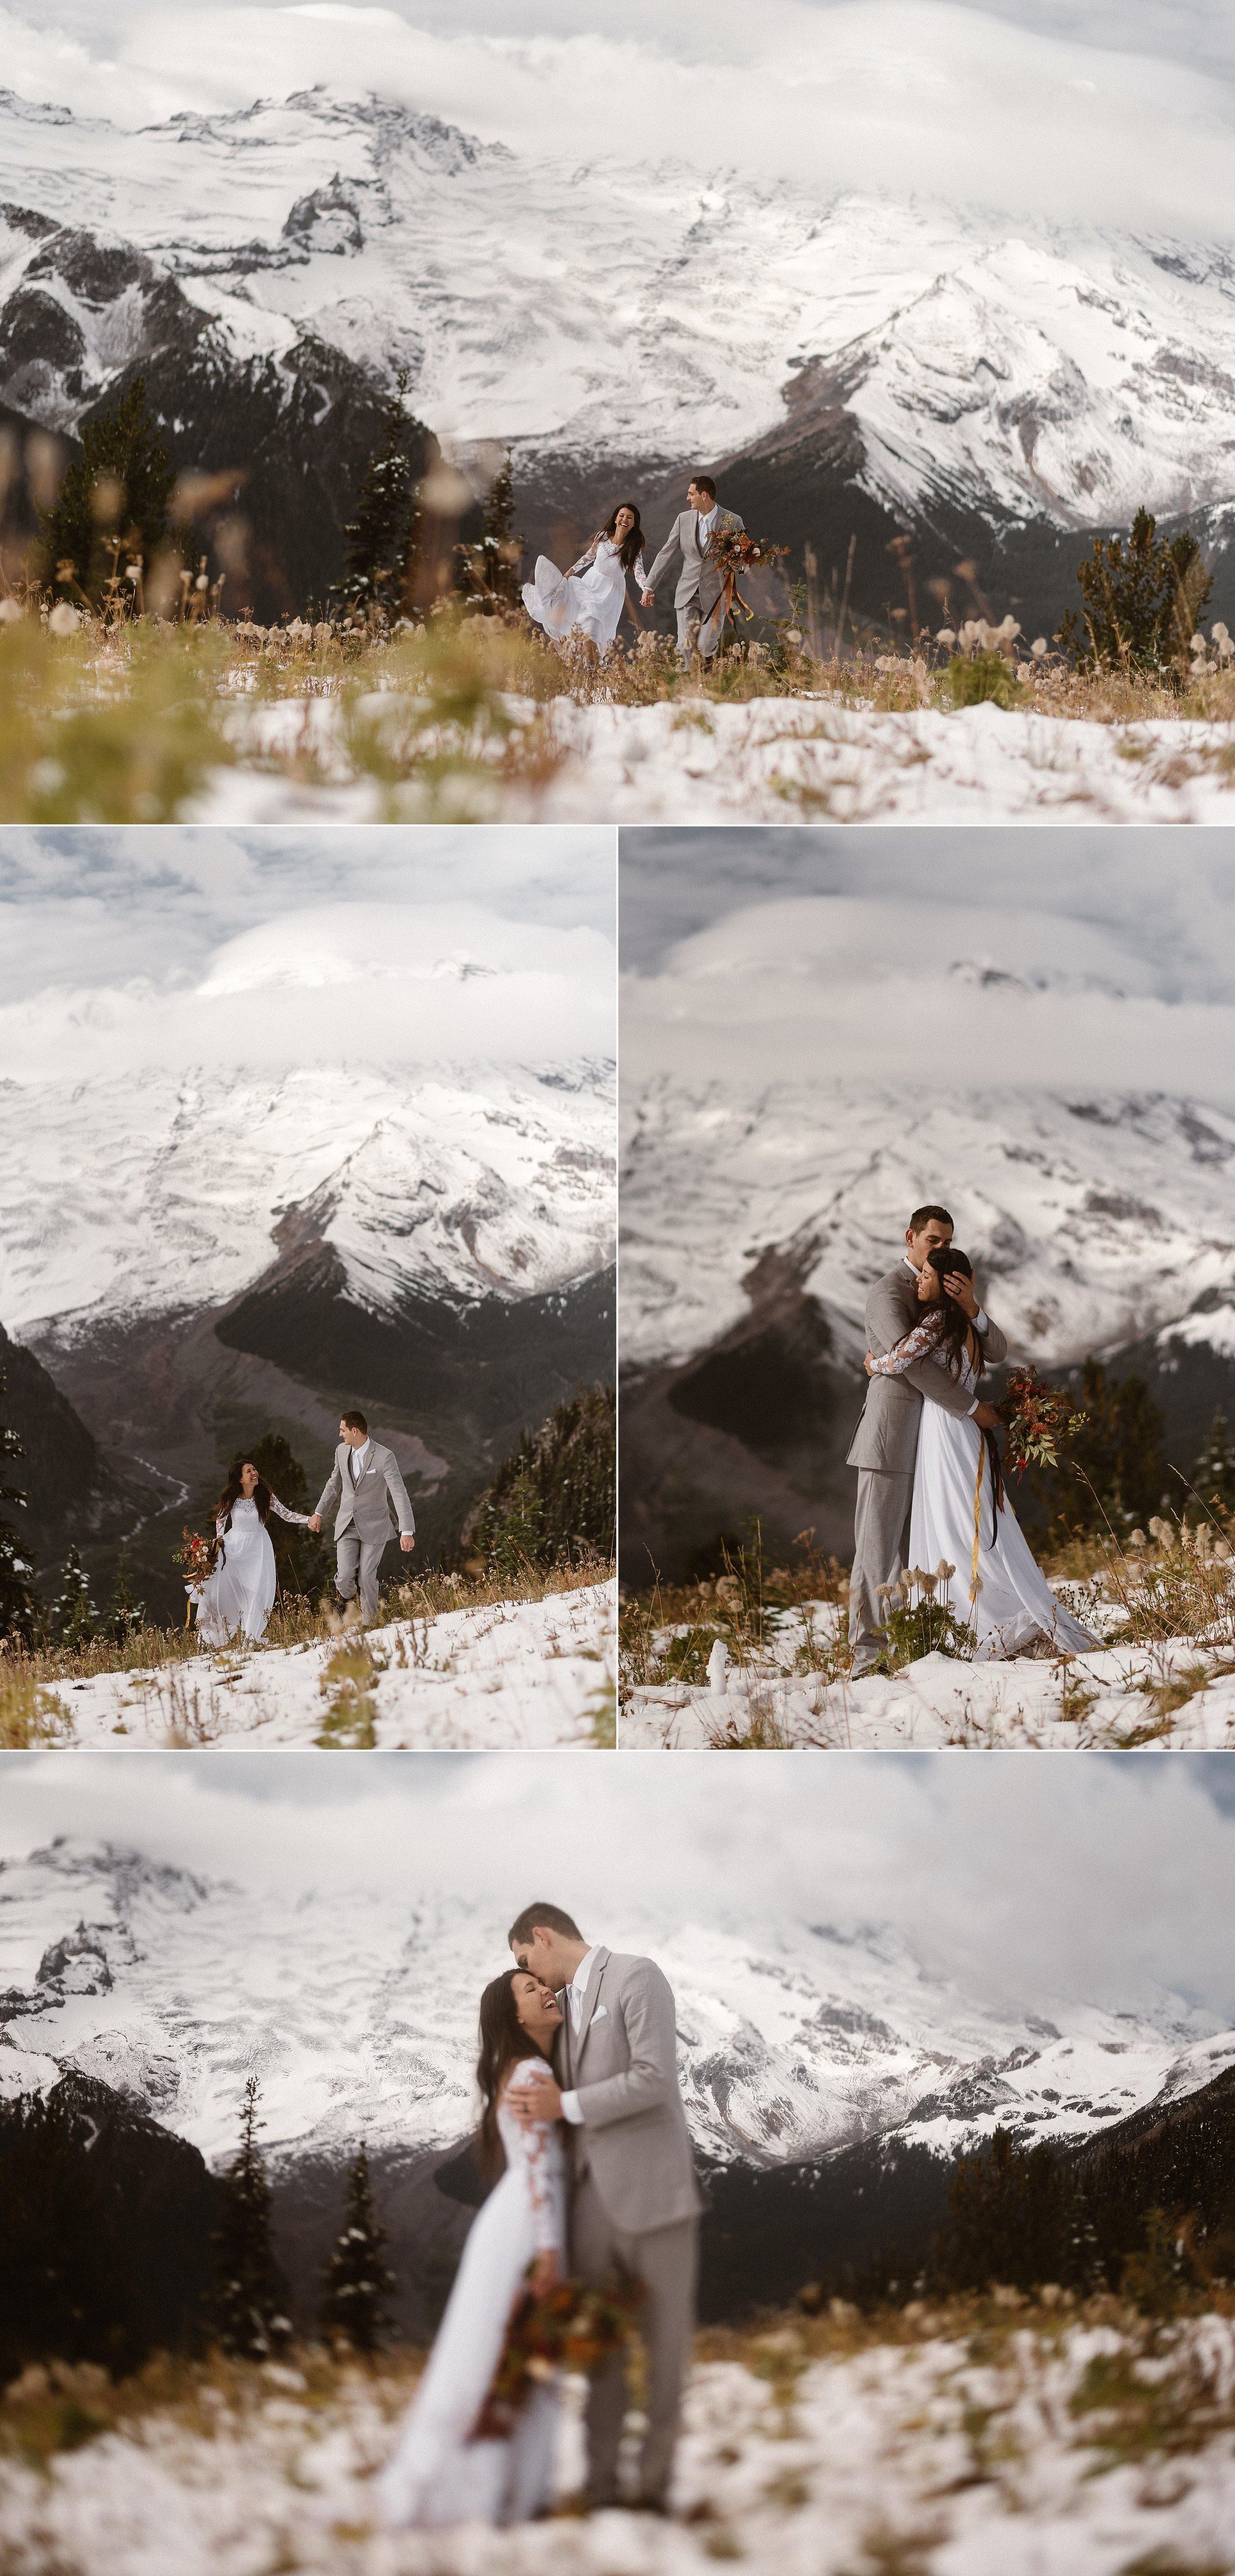 They made their way above the clouds into the snow and sunshine of Mount Rainier National Park. Ready for anything in their hiking boots they wandered through the snow after their intimate elopement ceremony with their traveling wedding photographer Maddie Mae for some snowy bridal portraits.